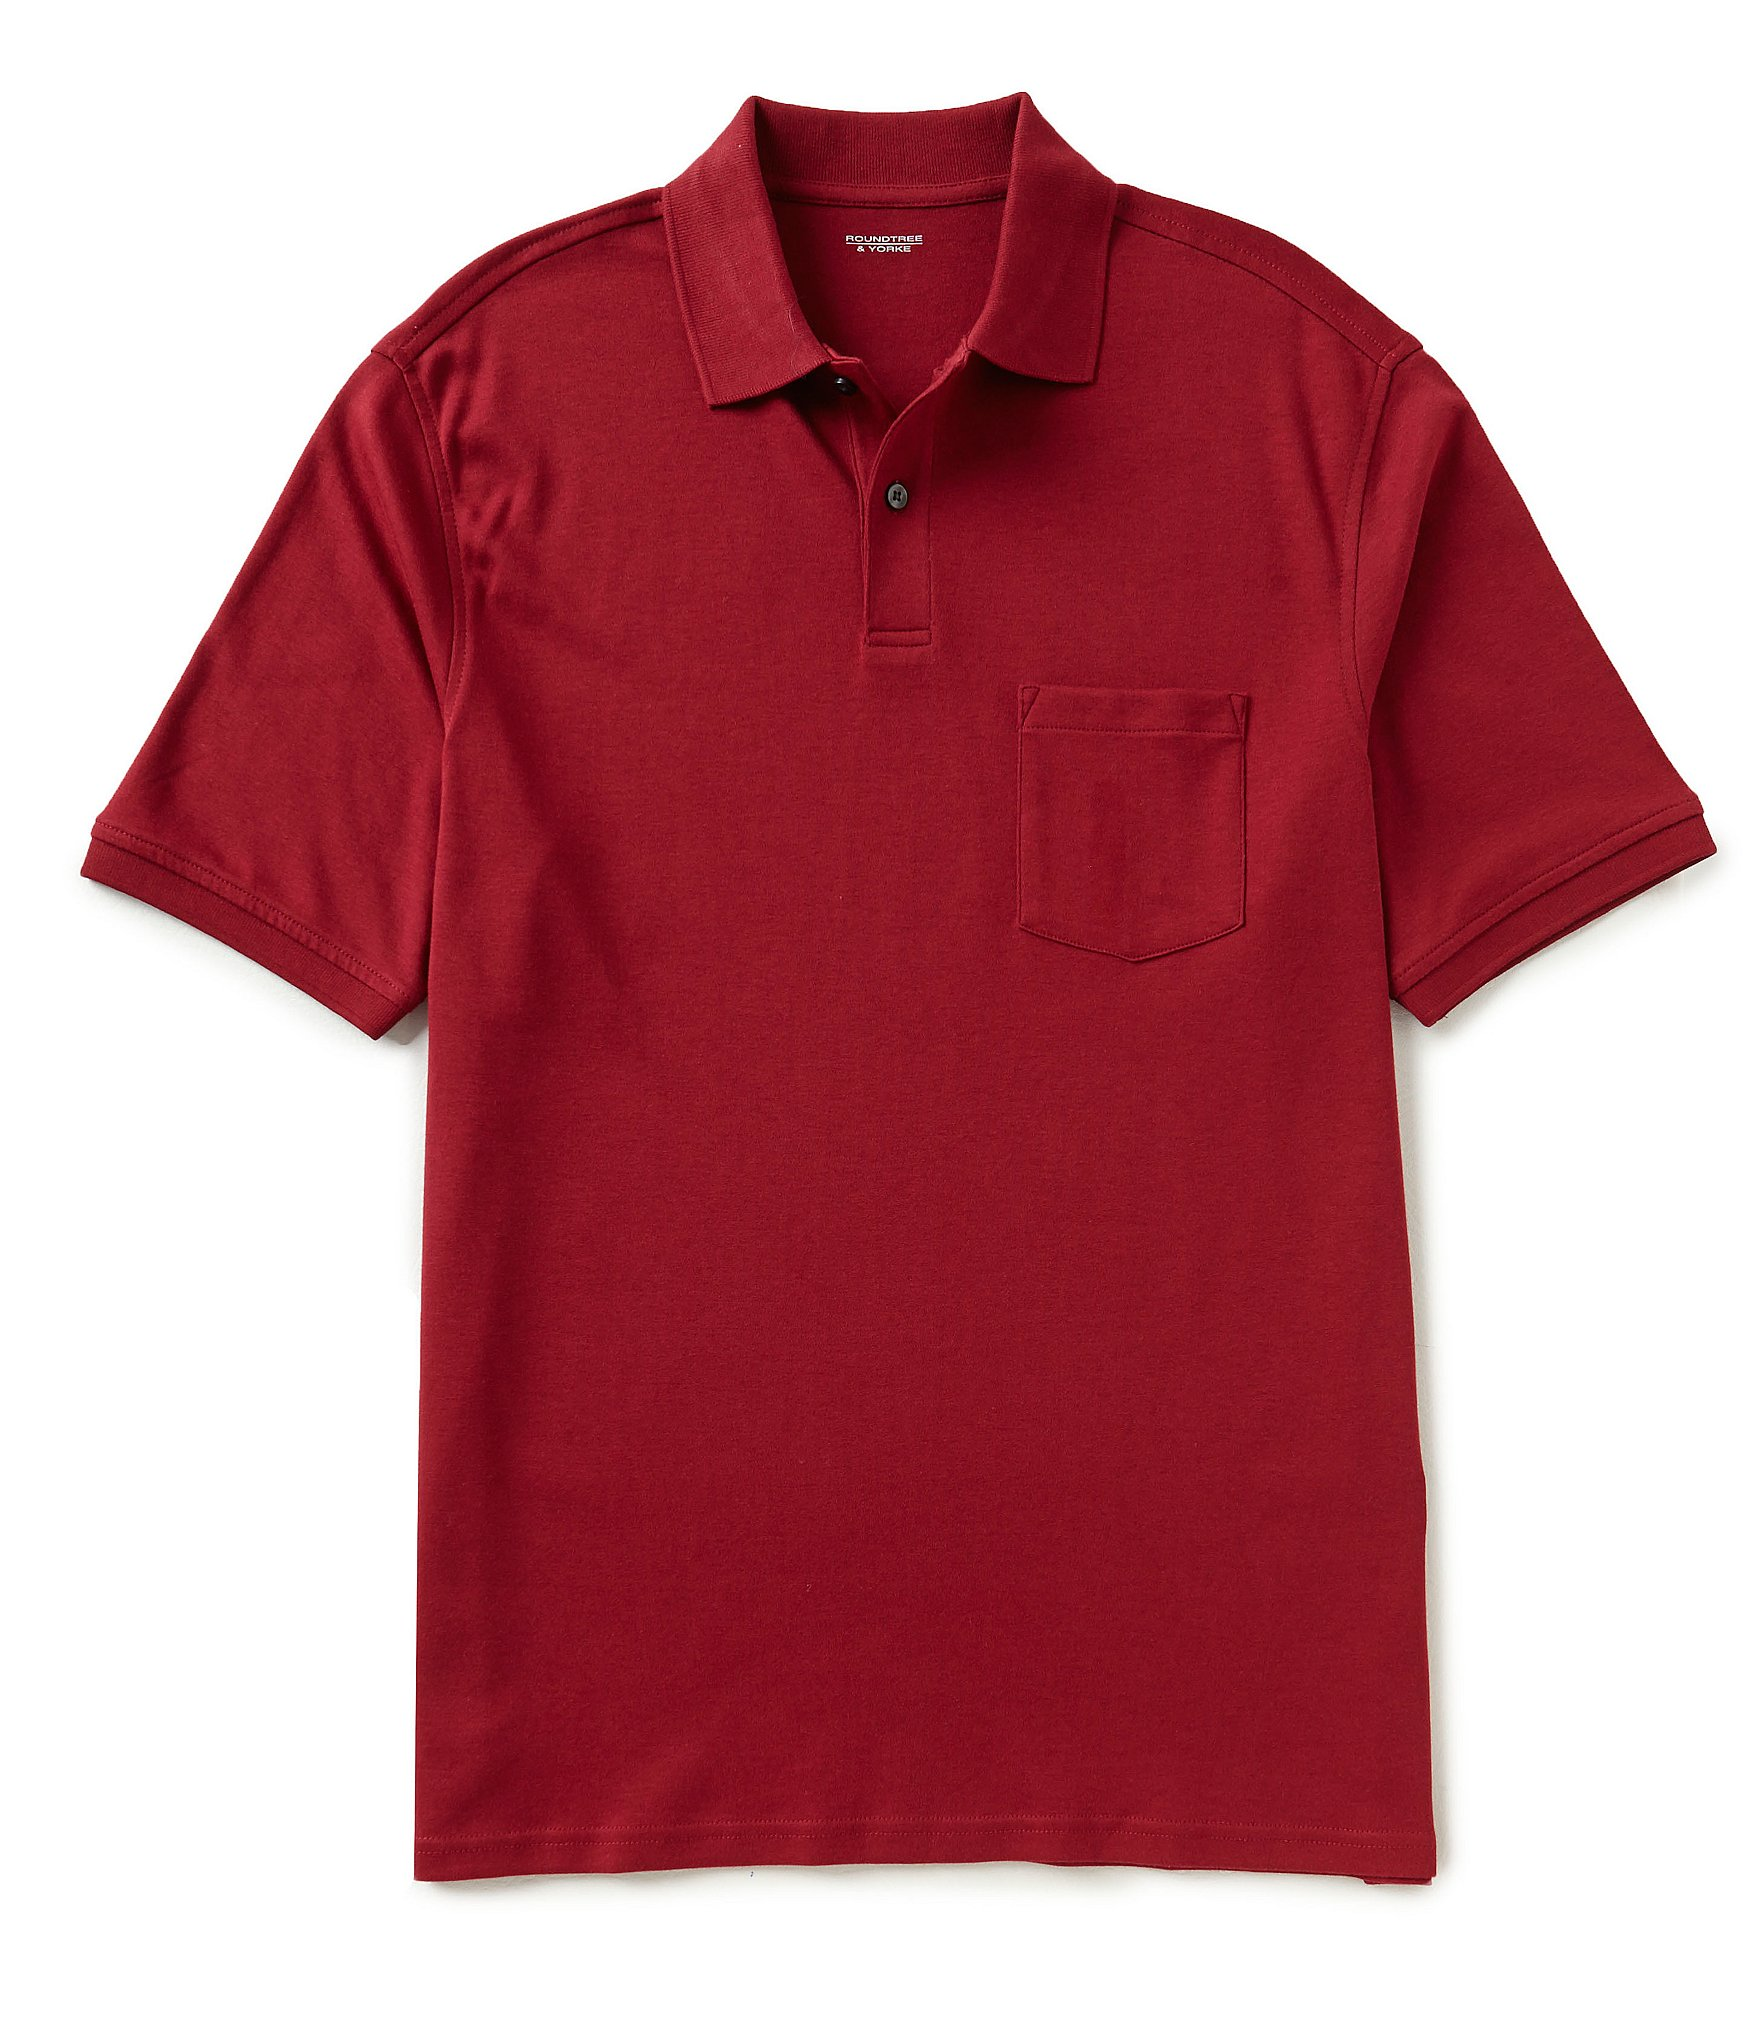 Roundtree yorke big tall silky finish solid polo shirt for Big and tall polo shirts with pockets